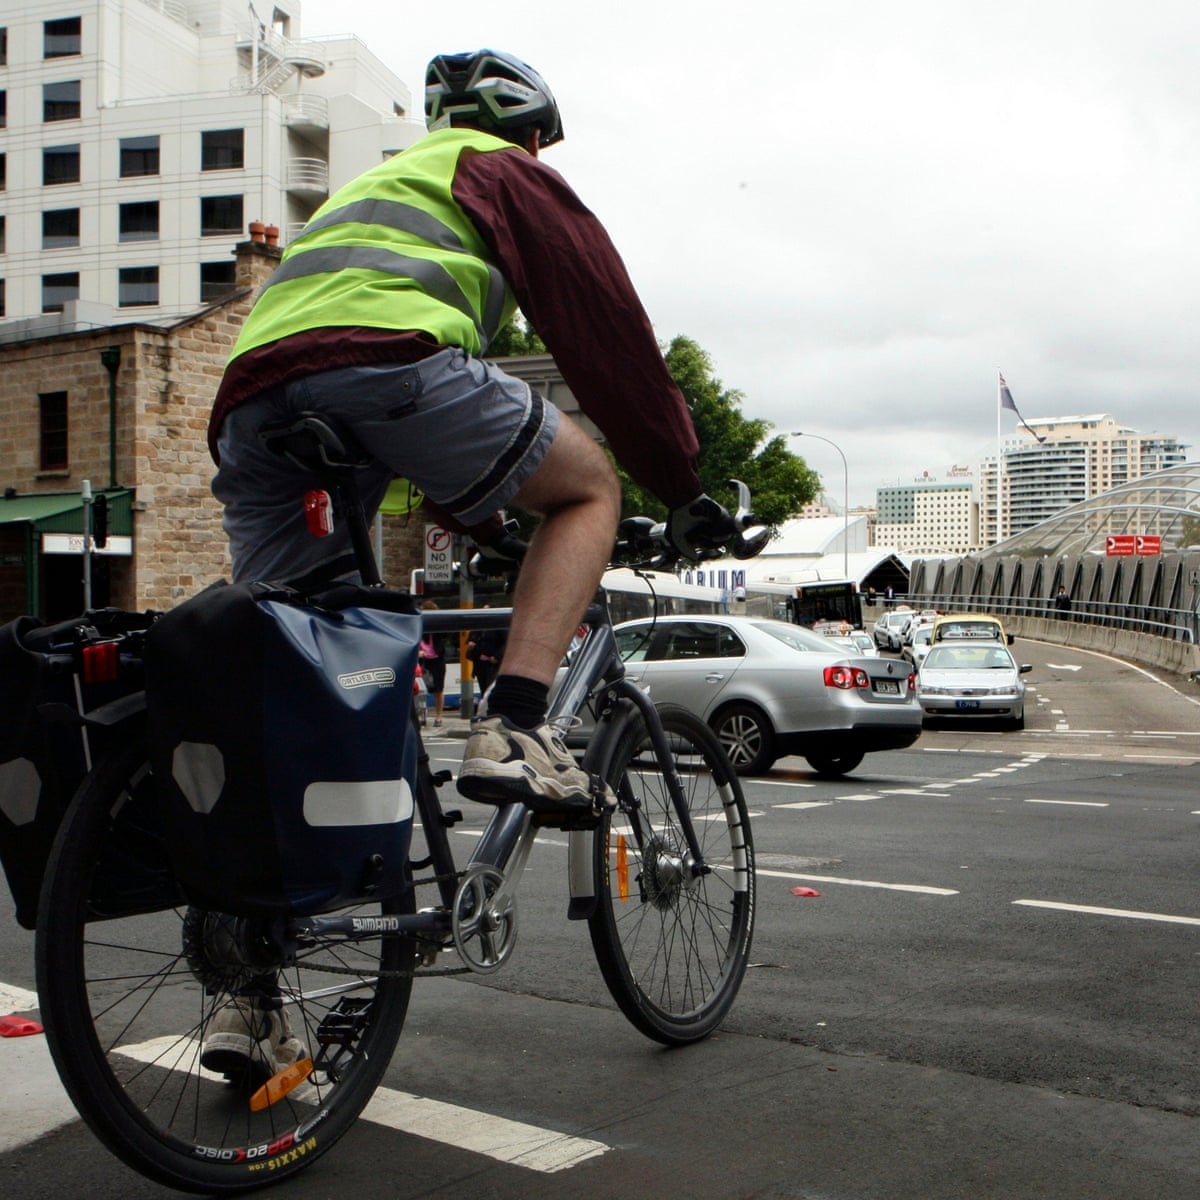 SEX AGENCY For bicycles in Sydney